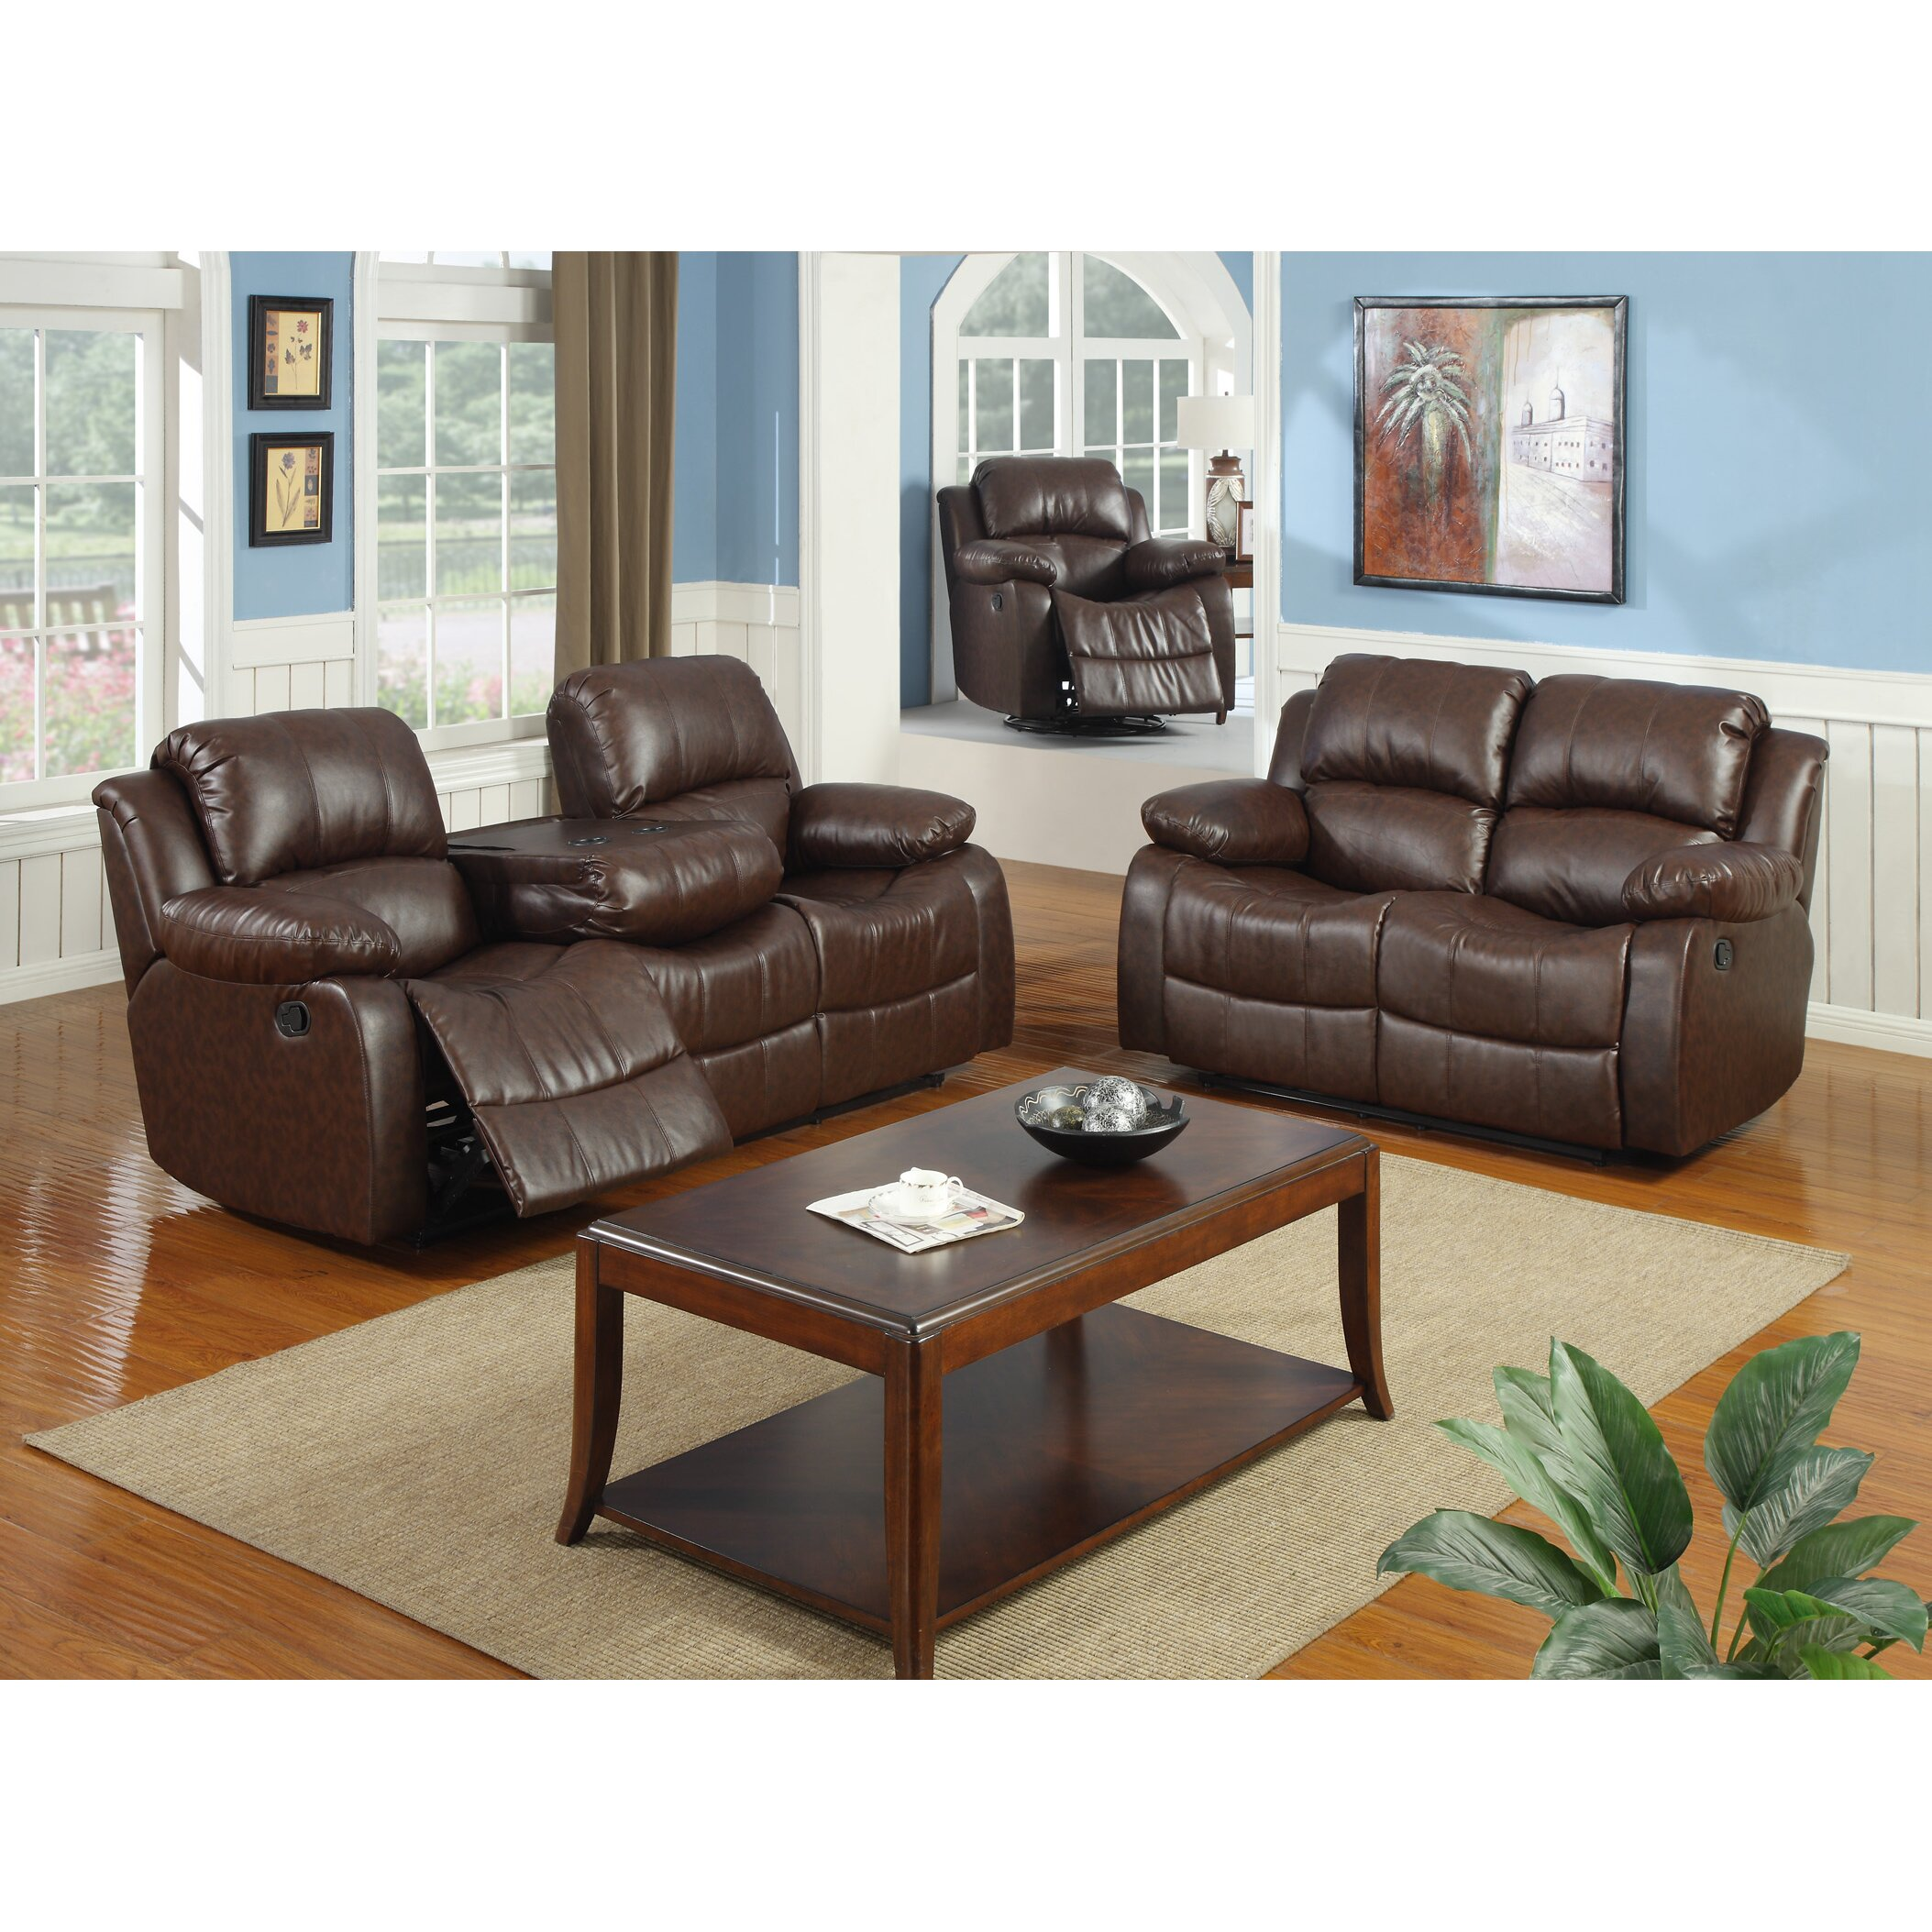 Best quality furniture bonded leather 3 piece recliner for Best living room chairs